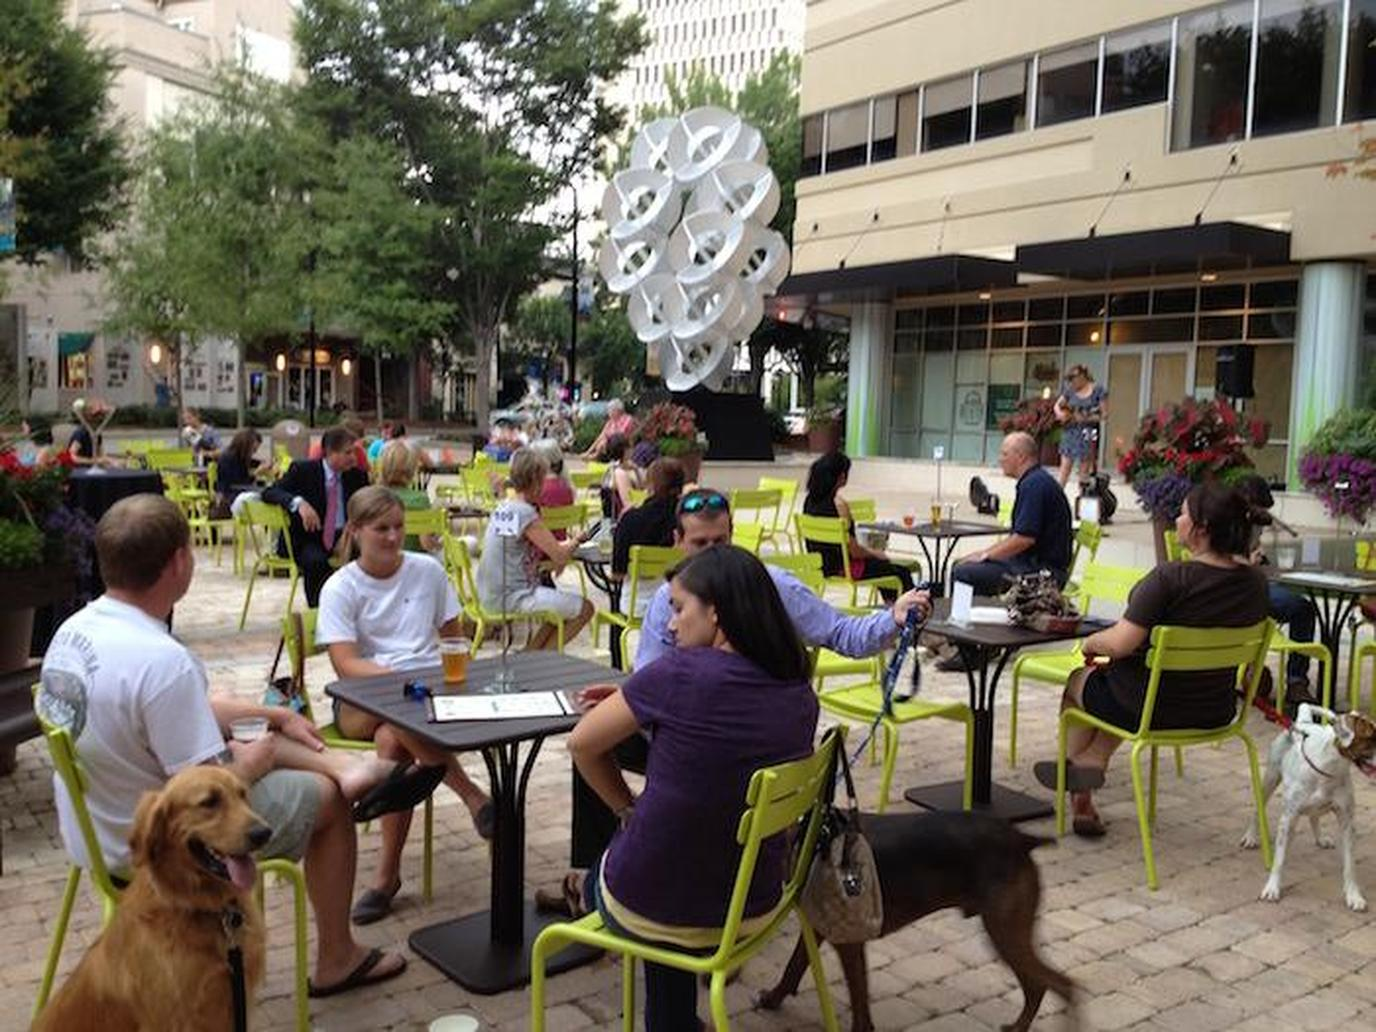 8 Fantastic Yappy Hours and Where to Find Them